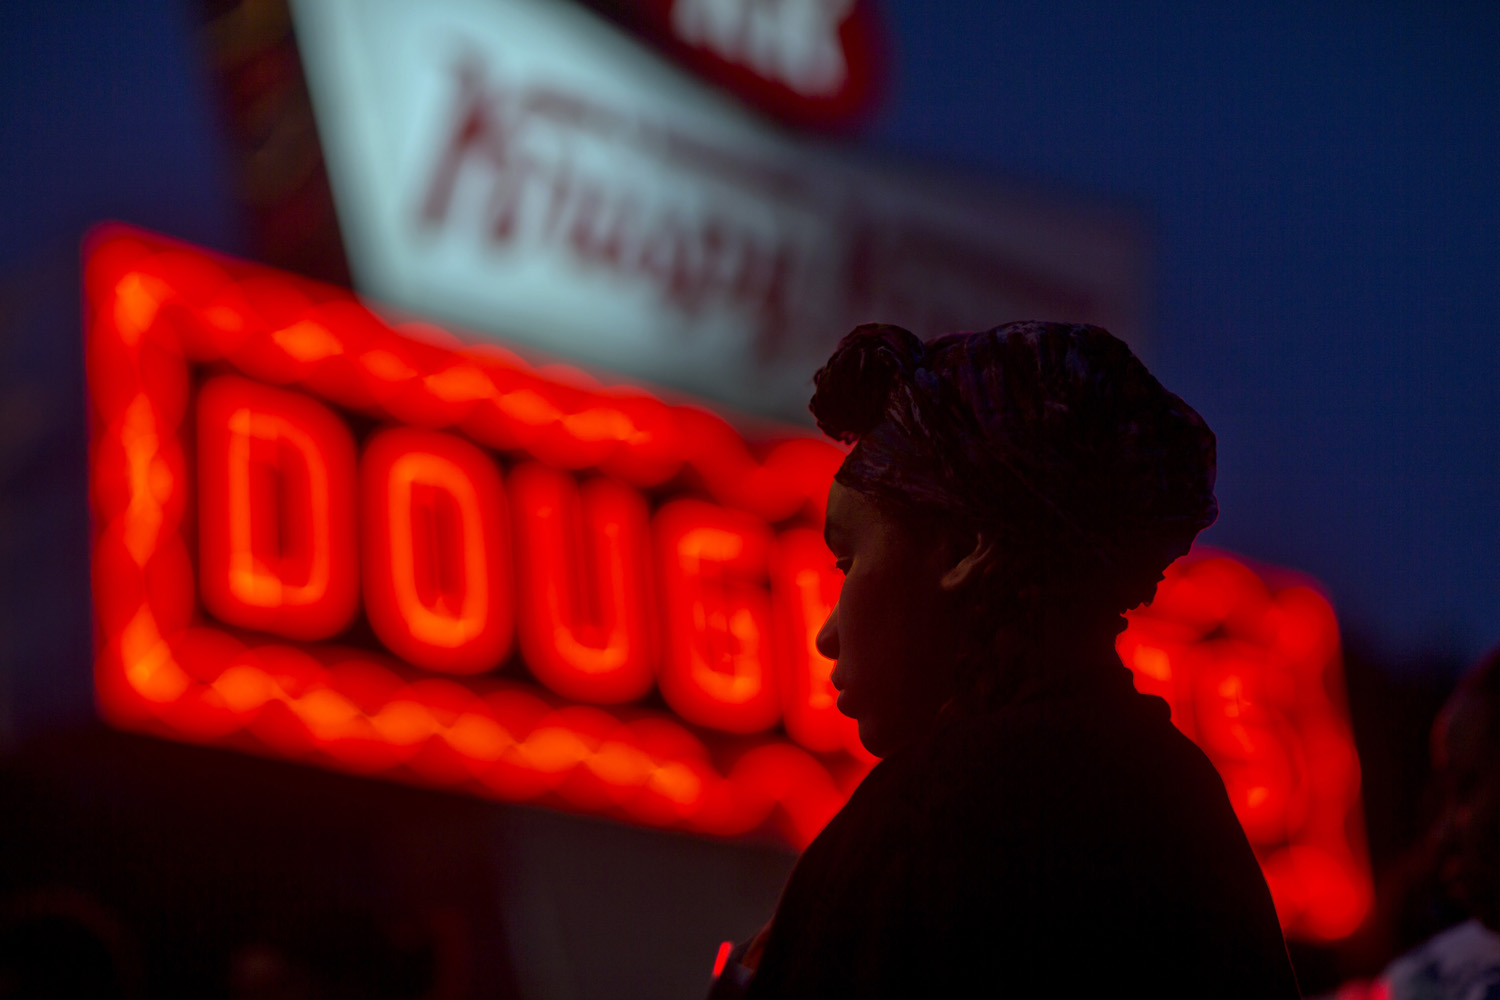 May 15, 2014. Burger King employee Keisha King, 23, stands during a protest outside a Krispy Kreme store in Atlanta.